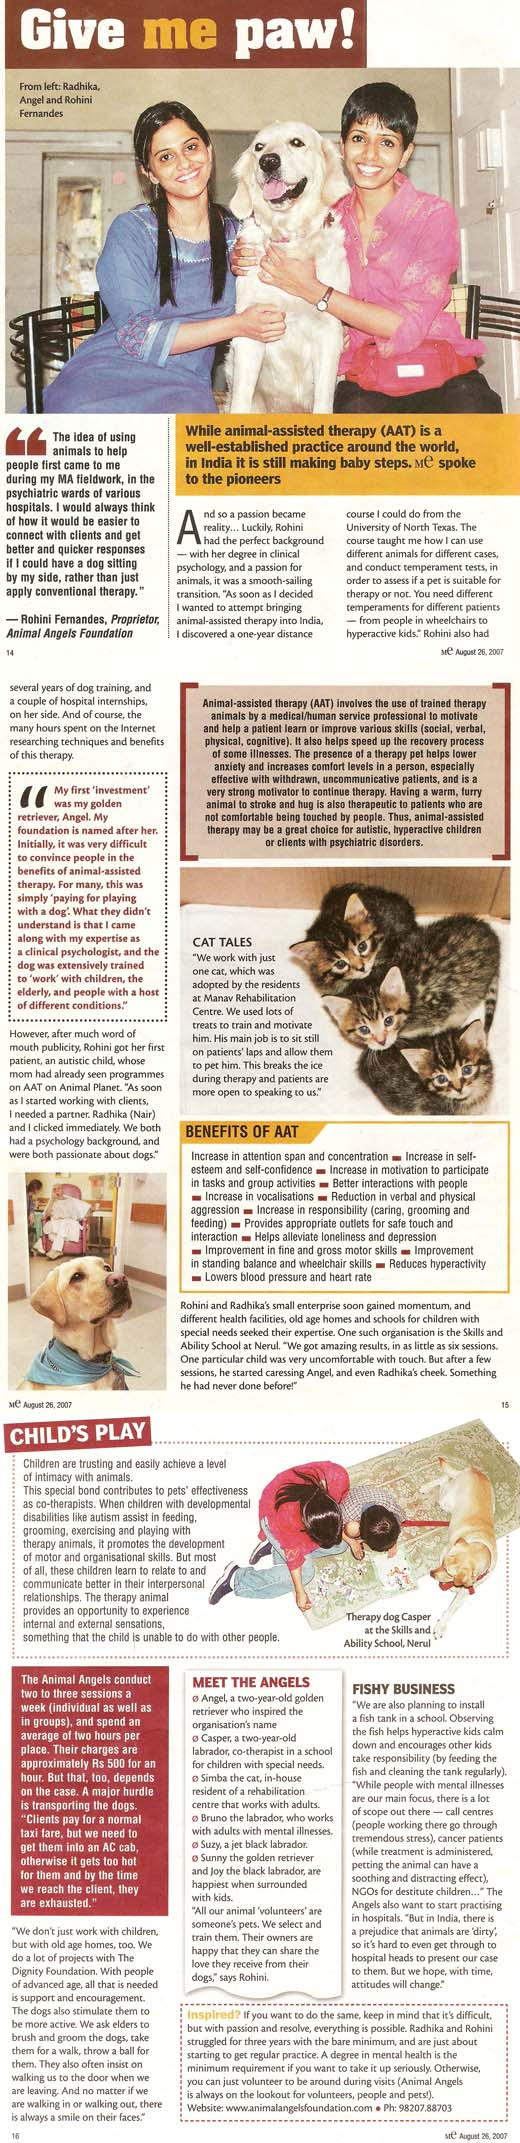 DNA mE article on Animal Angels Foundation - August 26, 2007